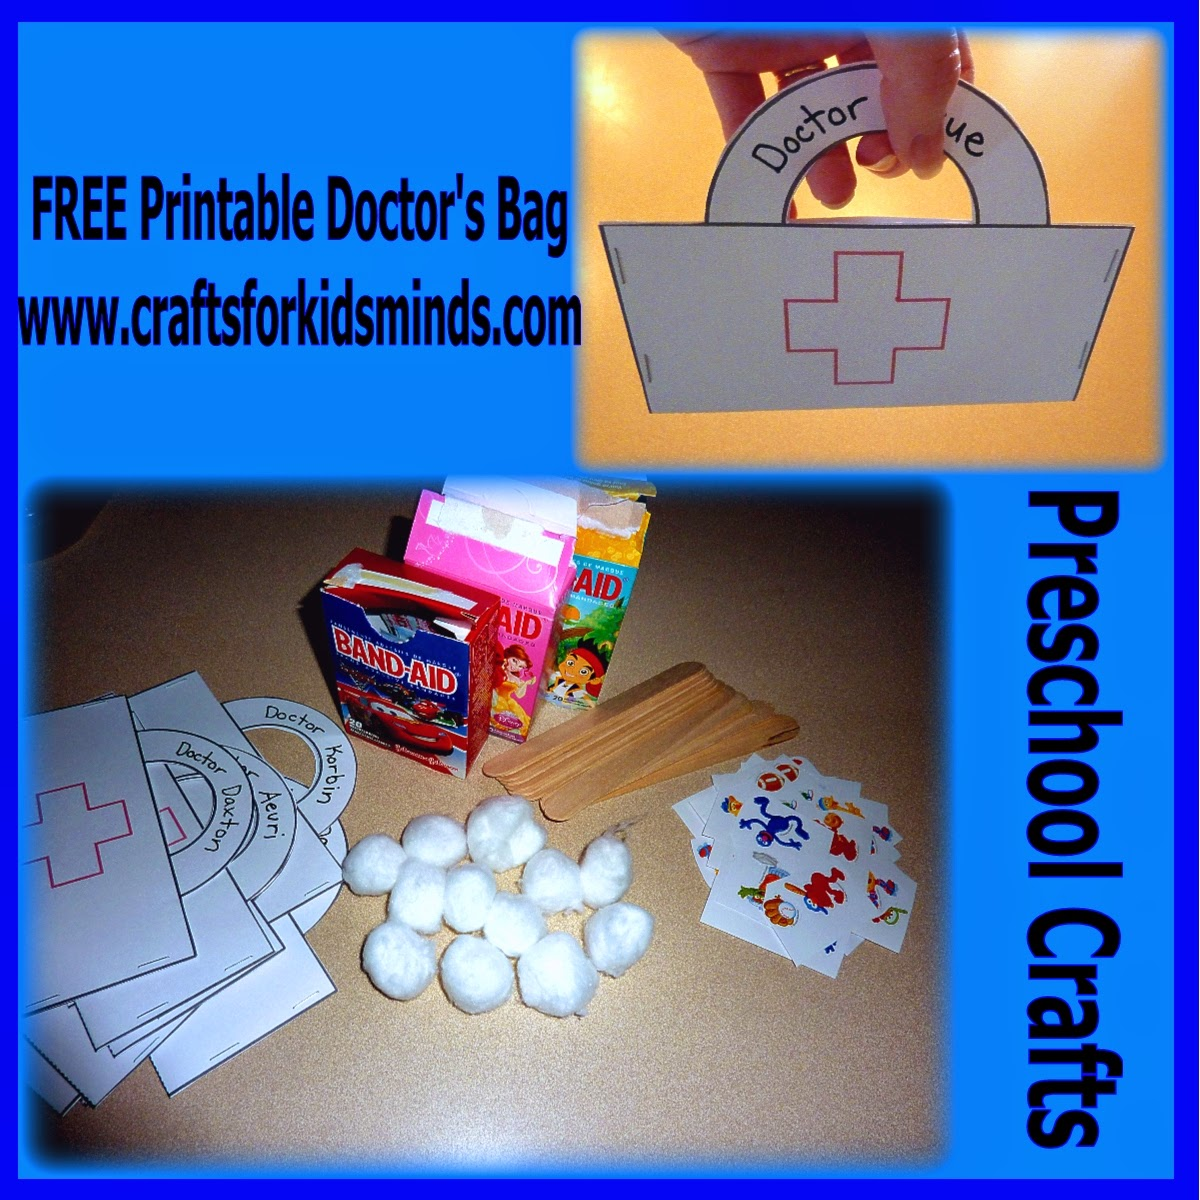 Crafts for kids 39 minds free printable preschool doctor for Doctor crafts for toddlers